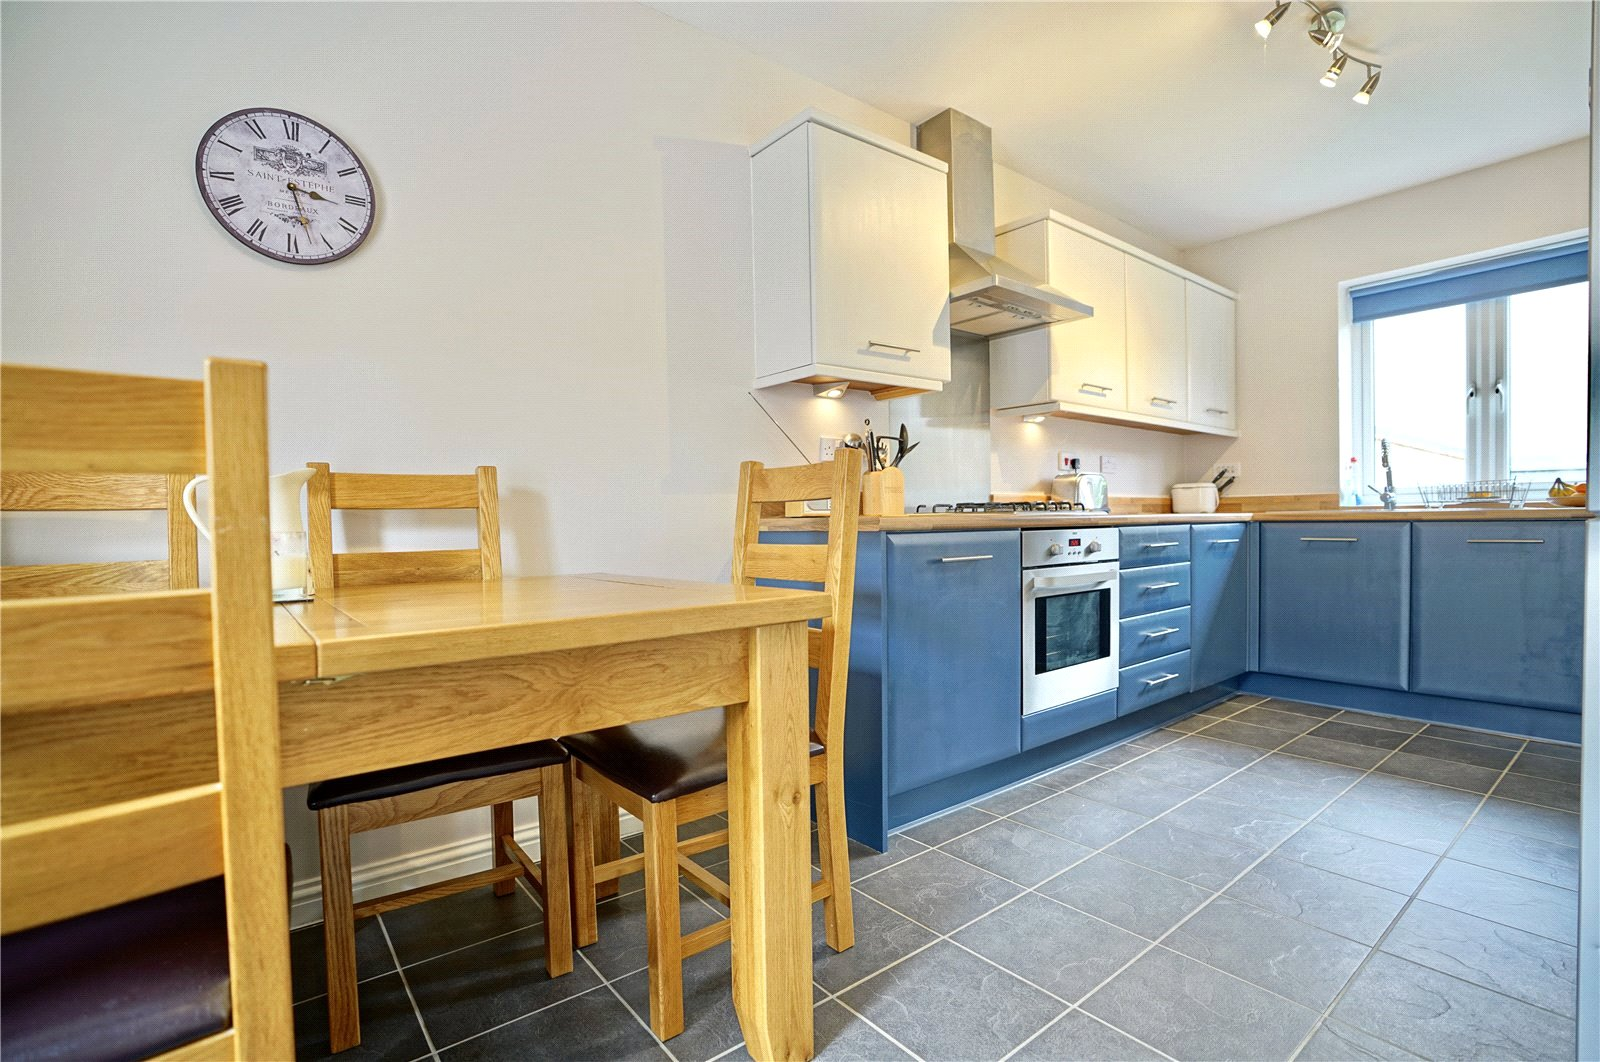 3 bed house for sale in St. Ives, PE27 5DL  - Property Image 2